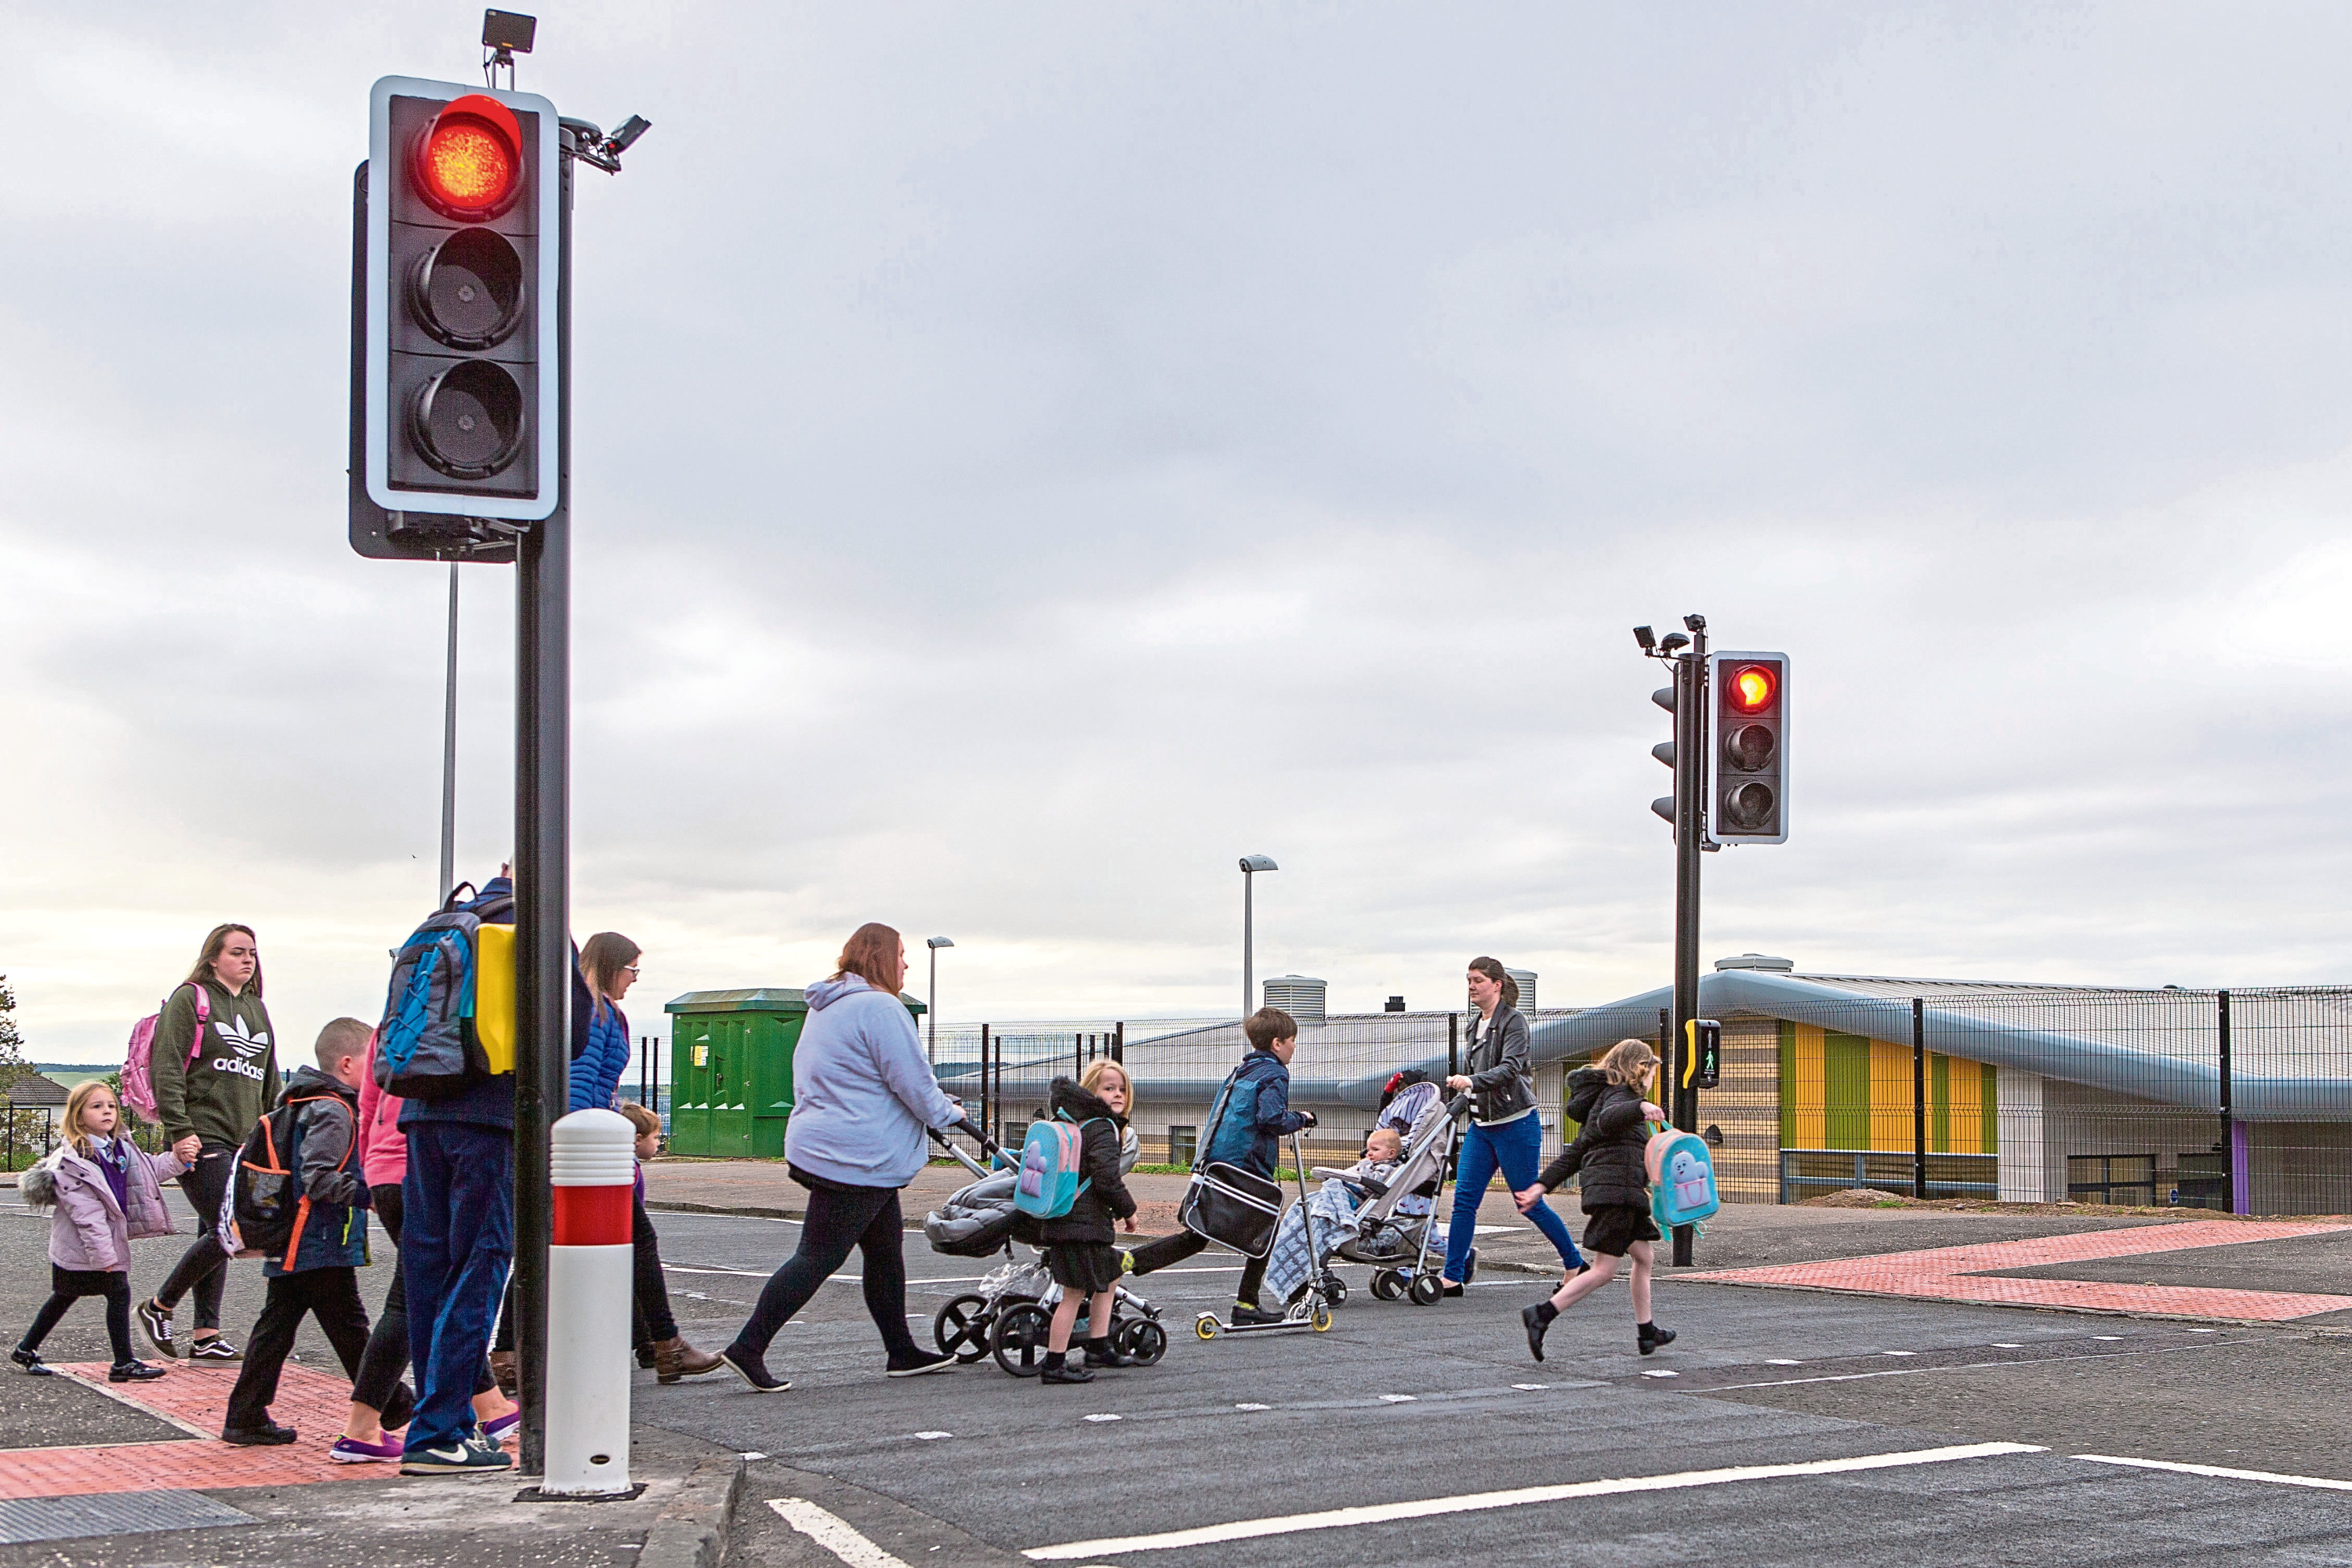 Tayview parents have said they have had long-standing concerns about traffic